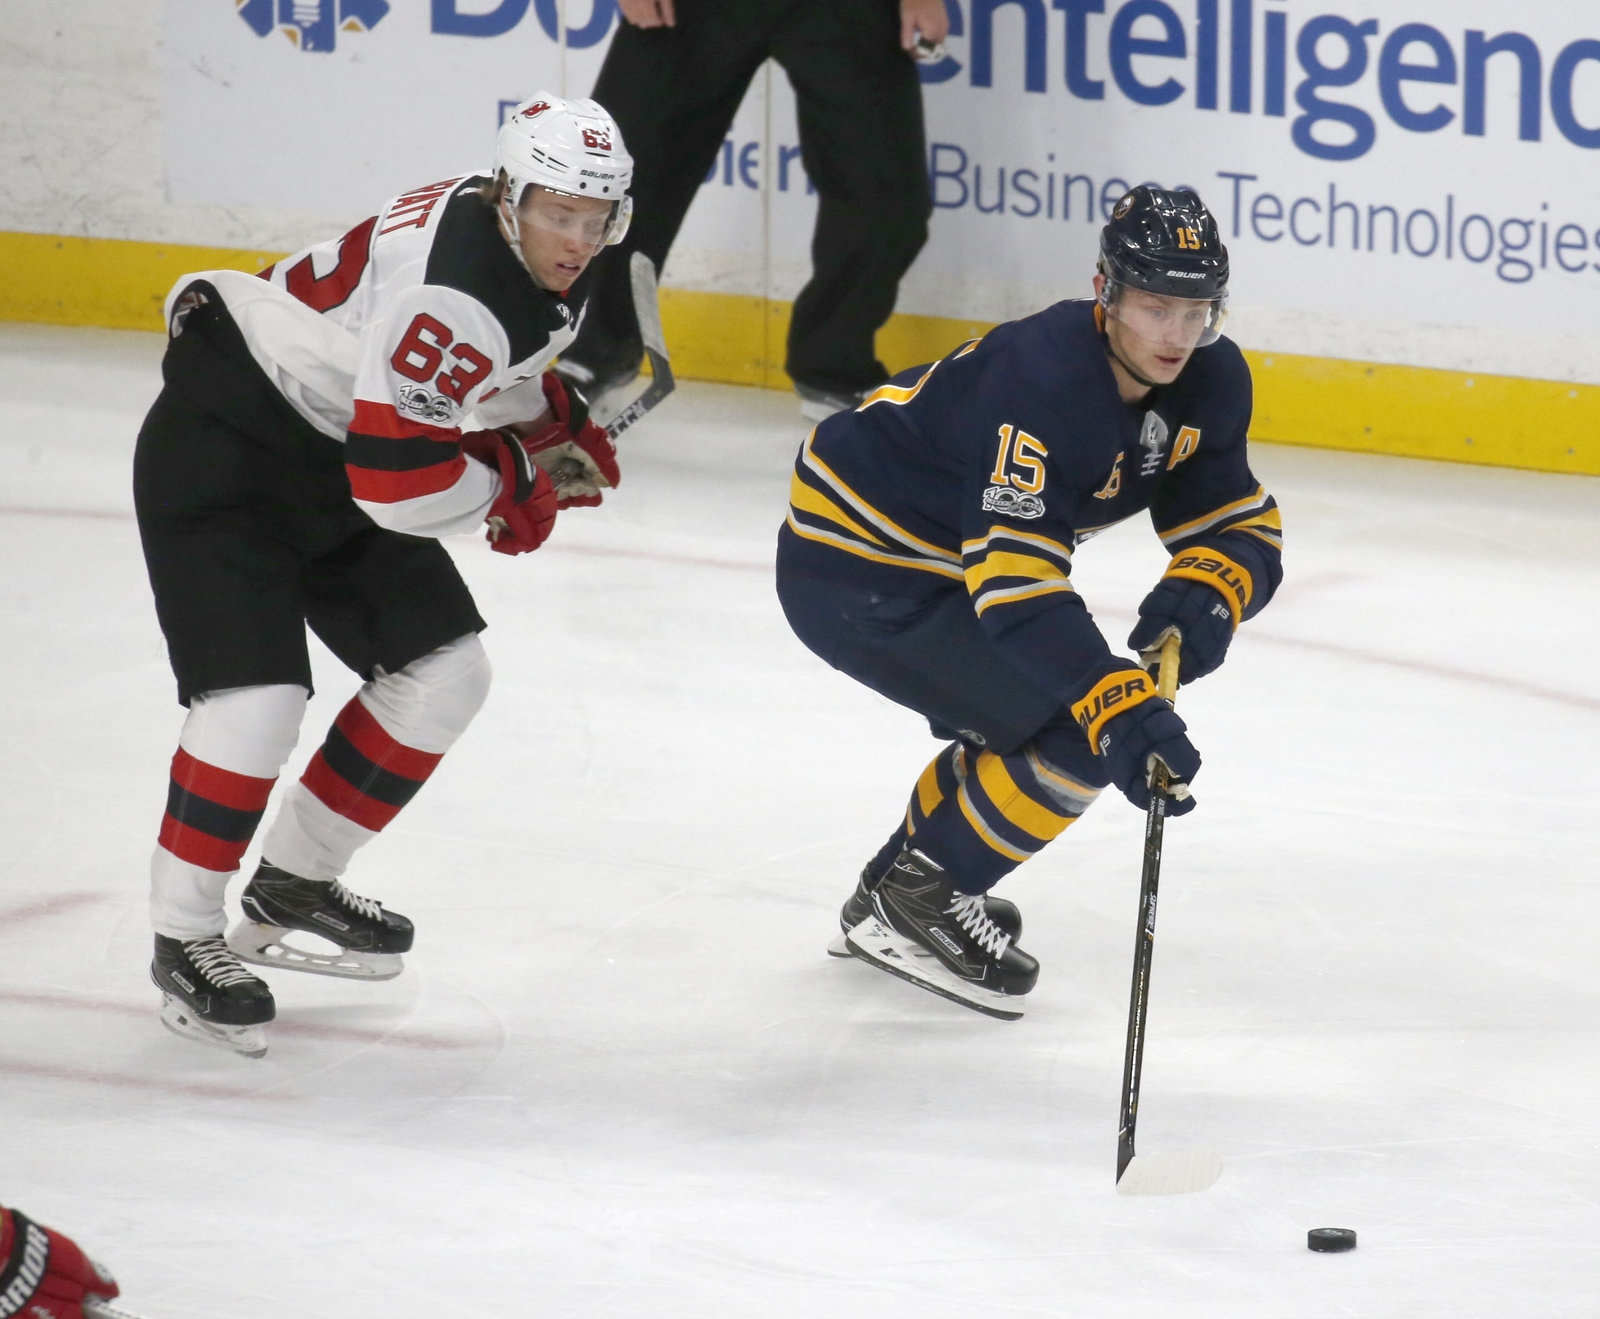 Buffalo's Jack Eichel (15) beats New Jersey's Jesper Bratt (63) to the puck in first-period action.